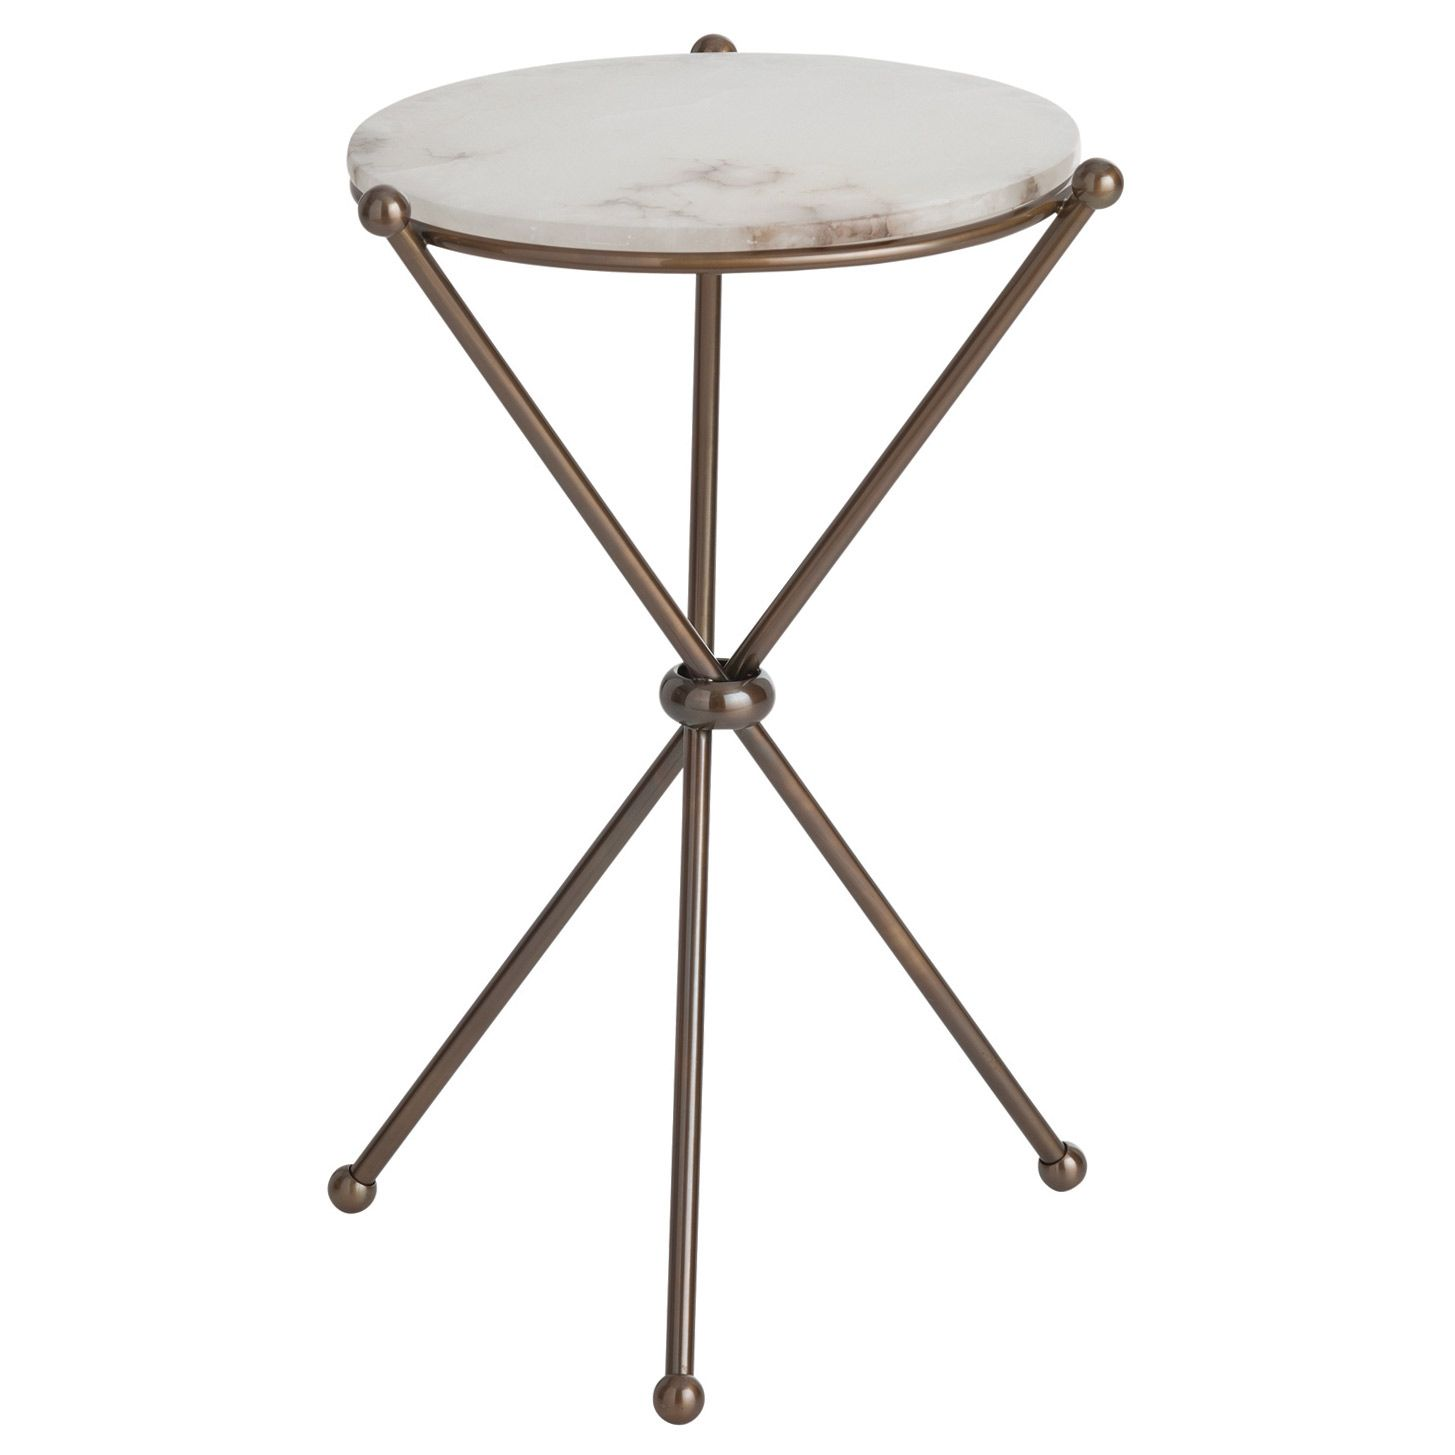 arteriors chloe antique brass marble accent table zinc door home square wall clock small decorative side tables metal wine rack furniture with charging station gaming dock silver